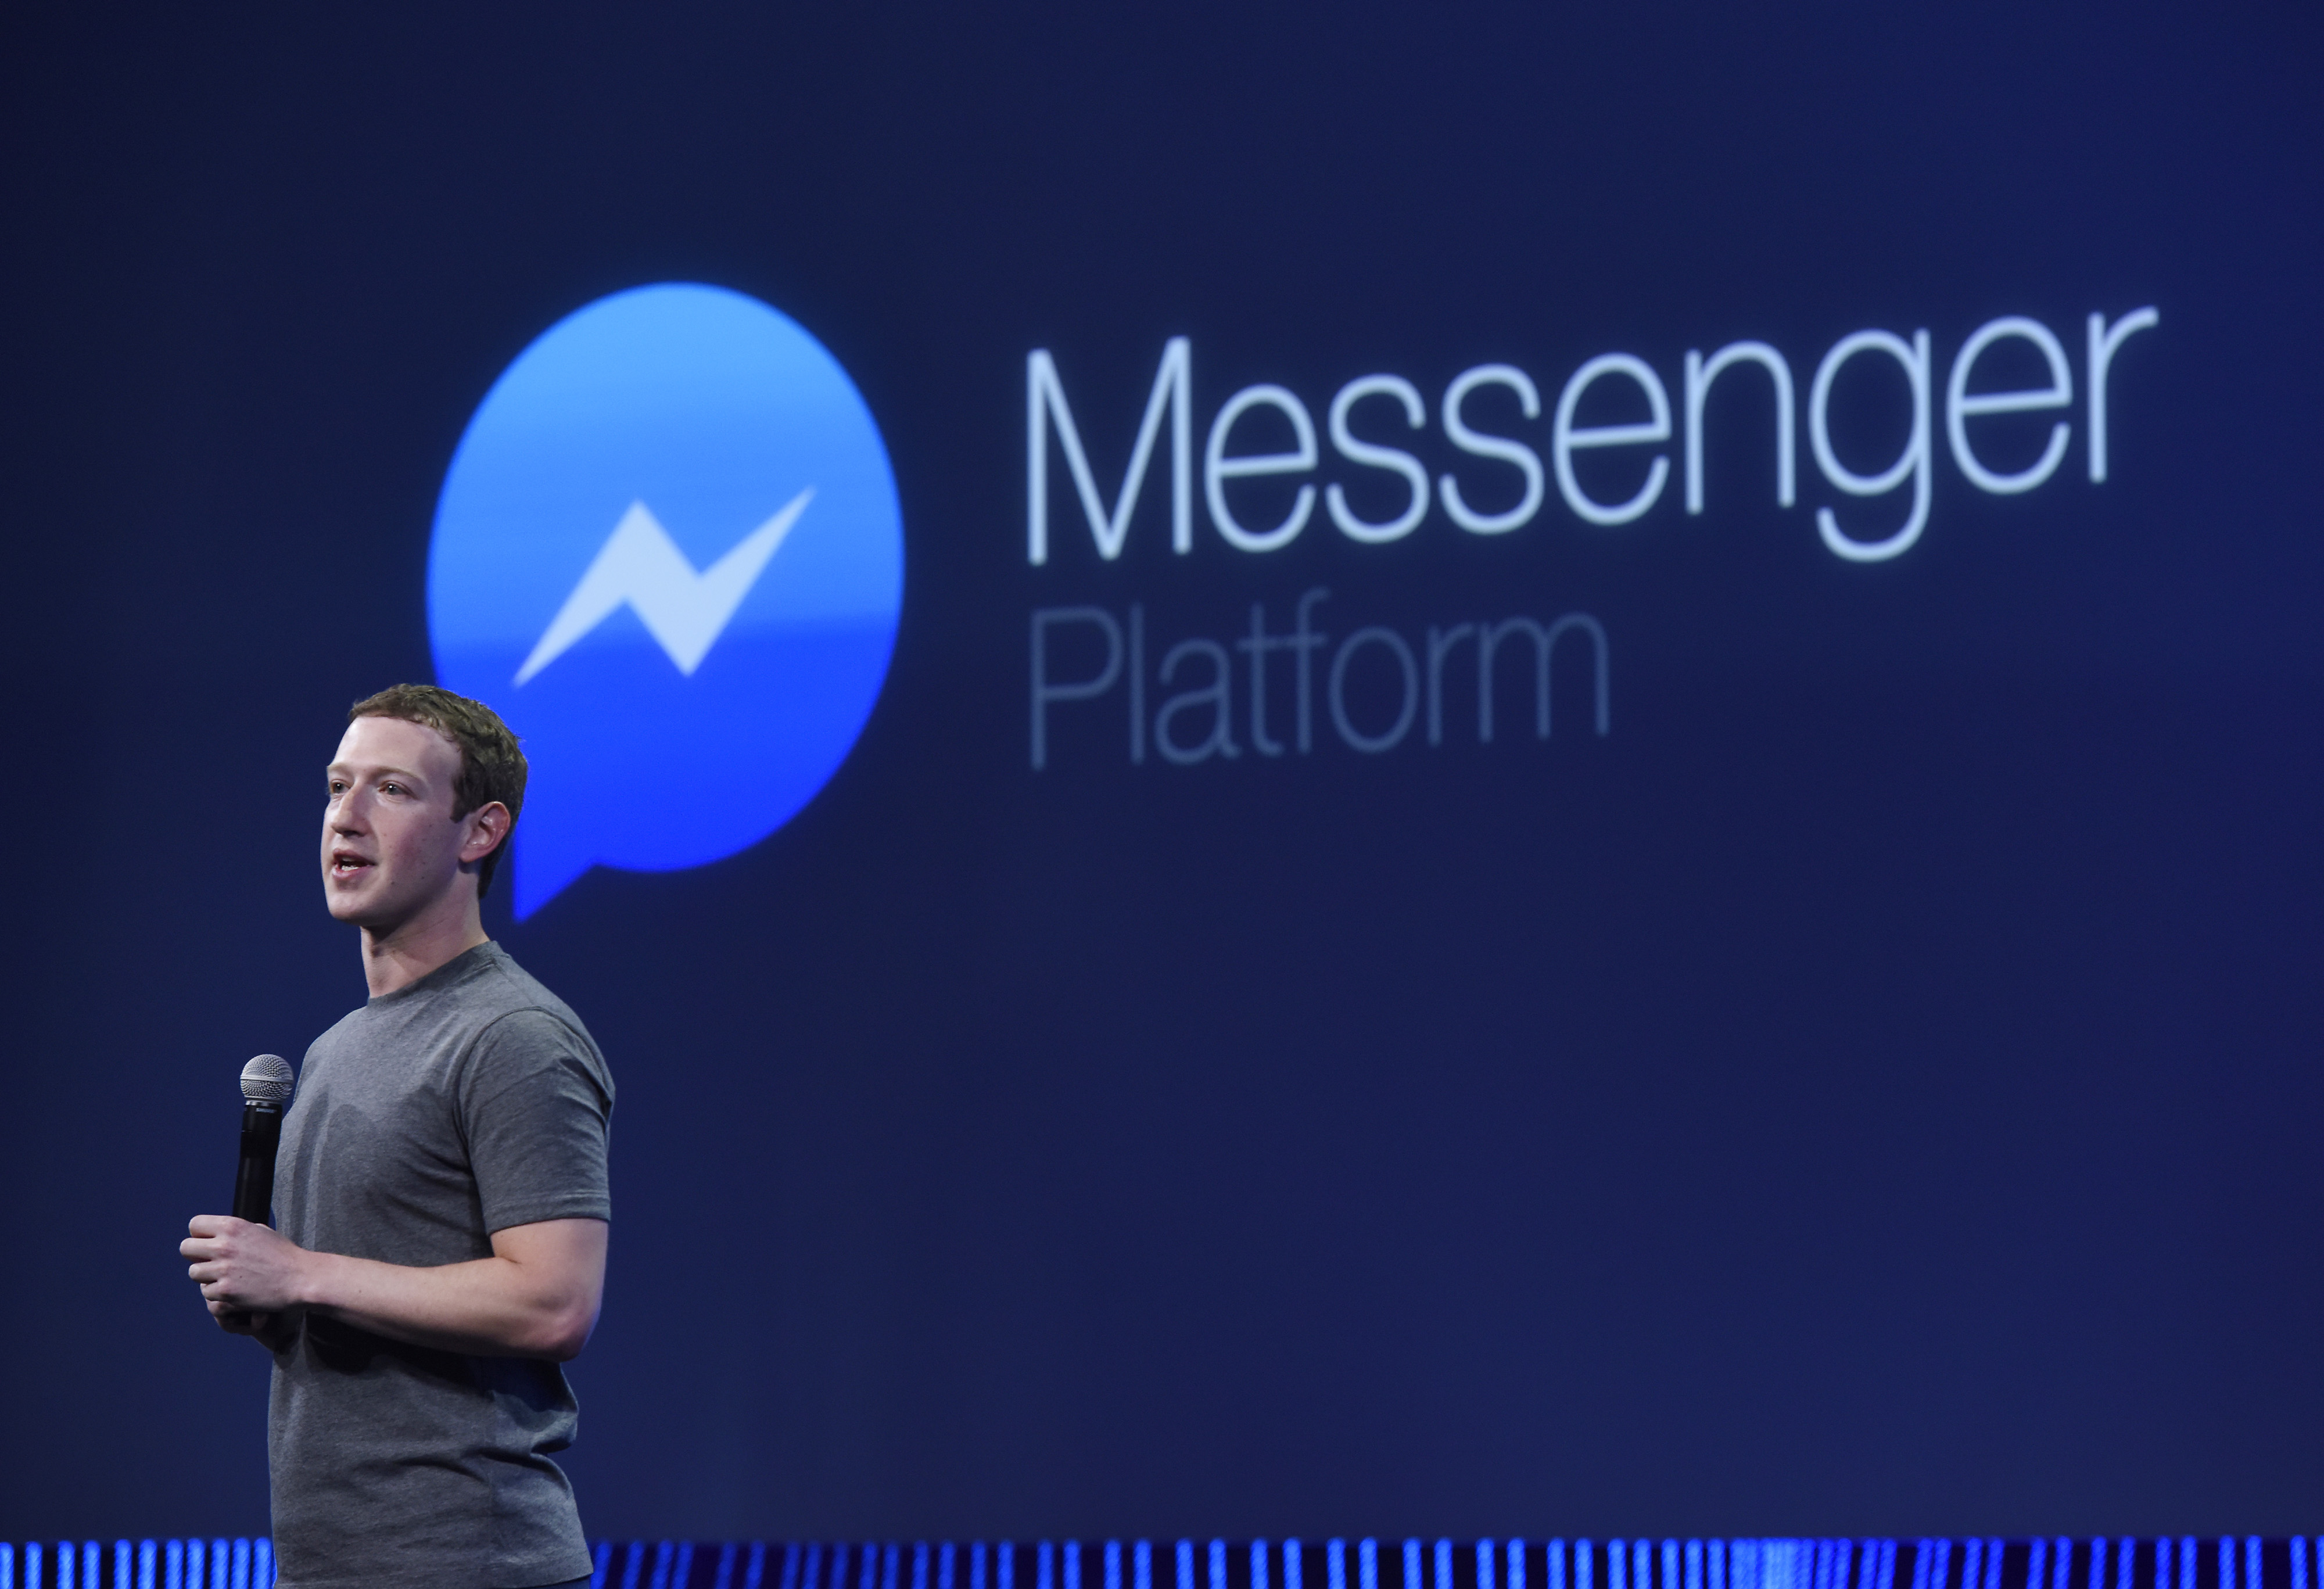 Mark Zuckerberg, CEO of Facebook Inc., speaks during the Facebook F8 Developers Conference in San Francisco, Calif., on March 25, 2015.